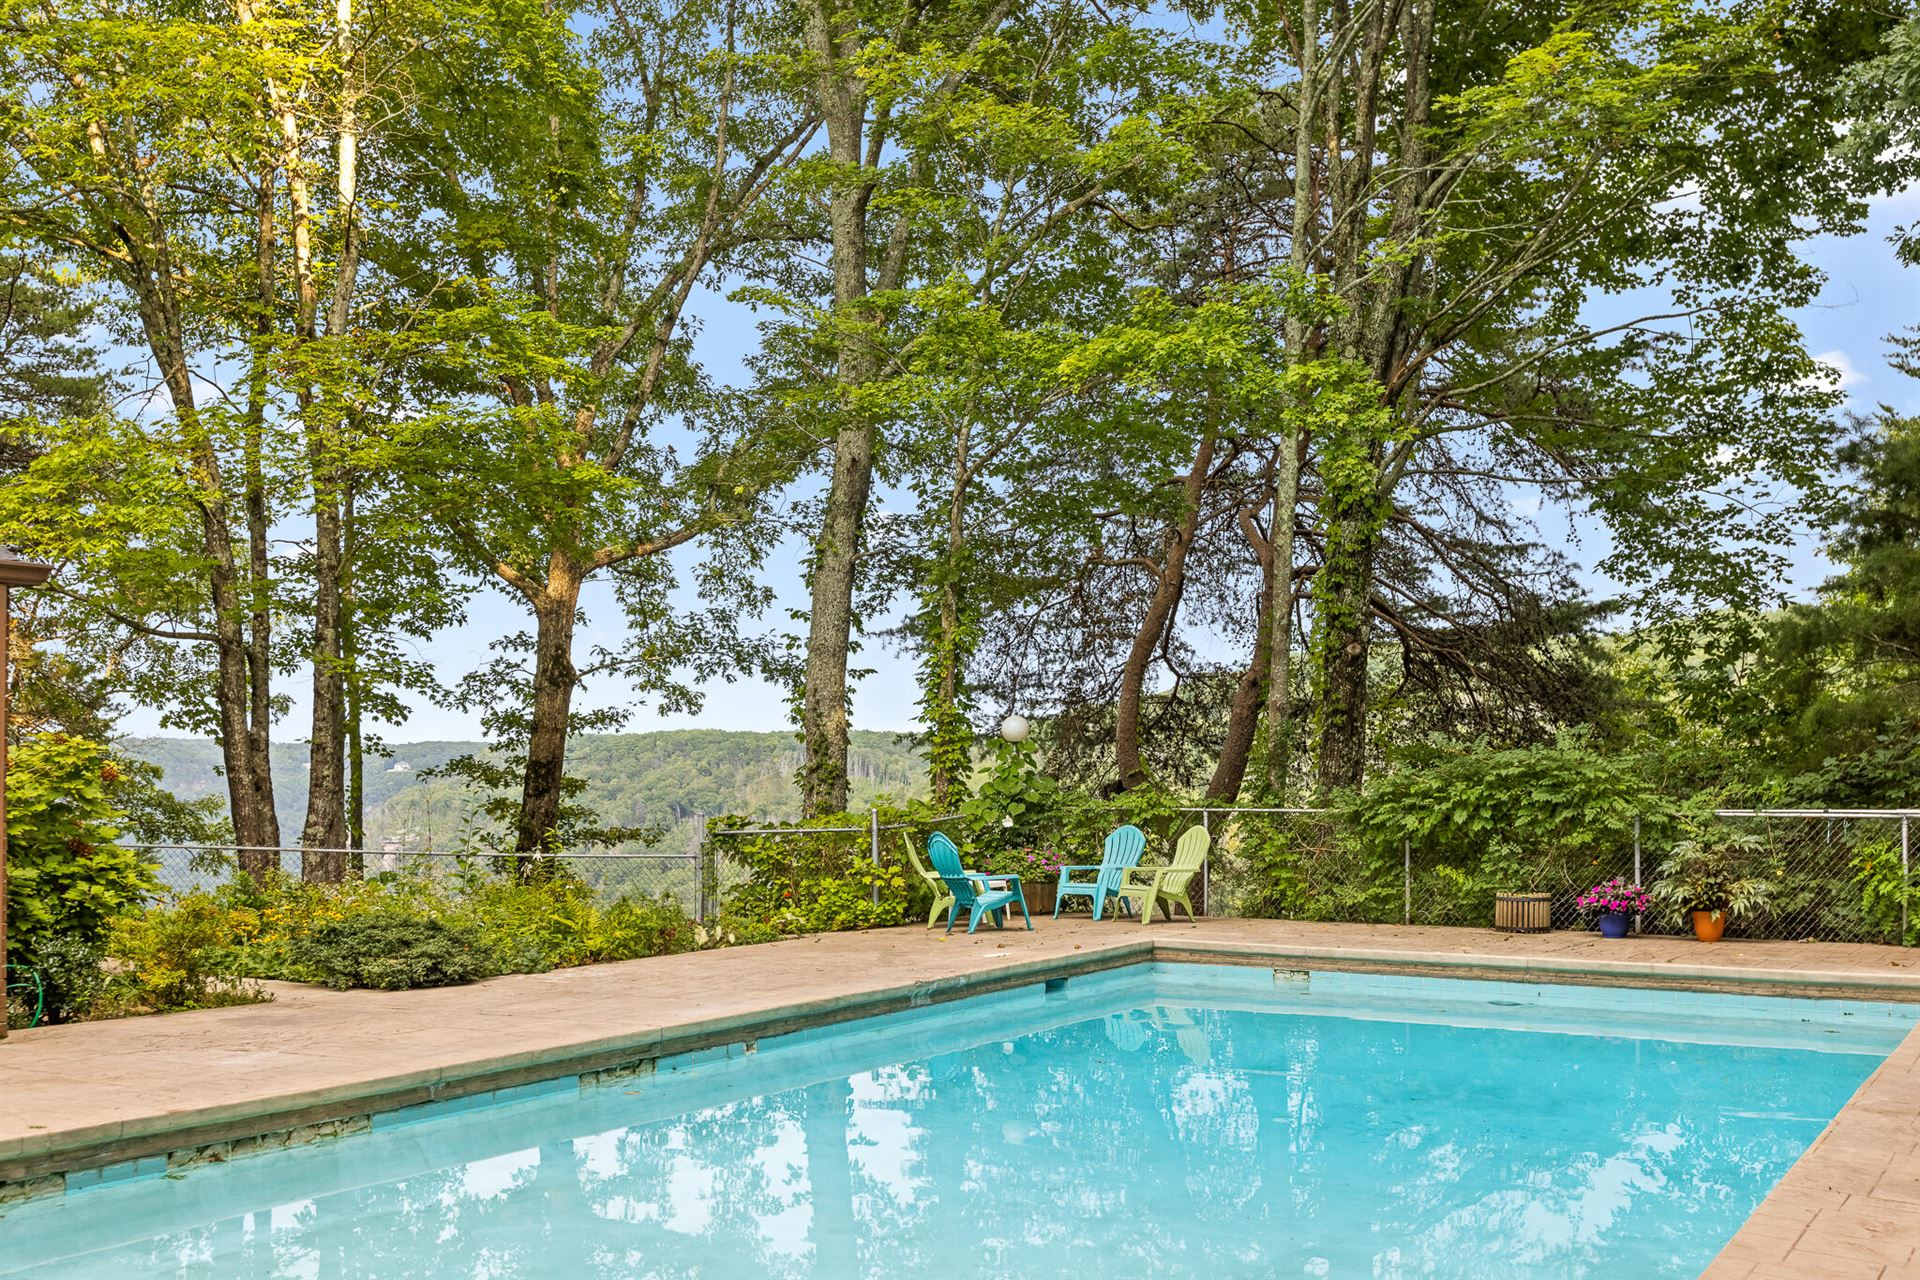 Photo for 2300 Little Bend Rd, Signal Mountain, TN 37377 (MLS # 1342488)